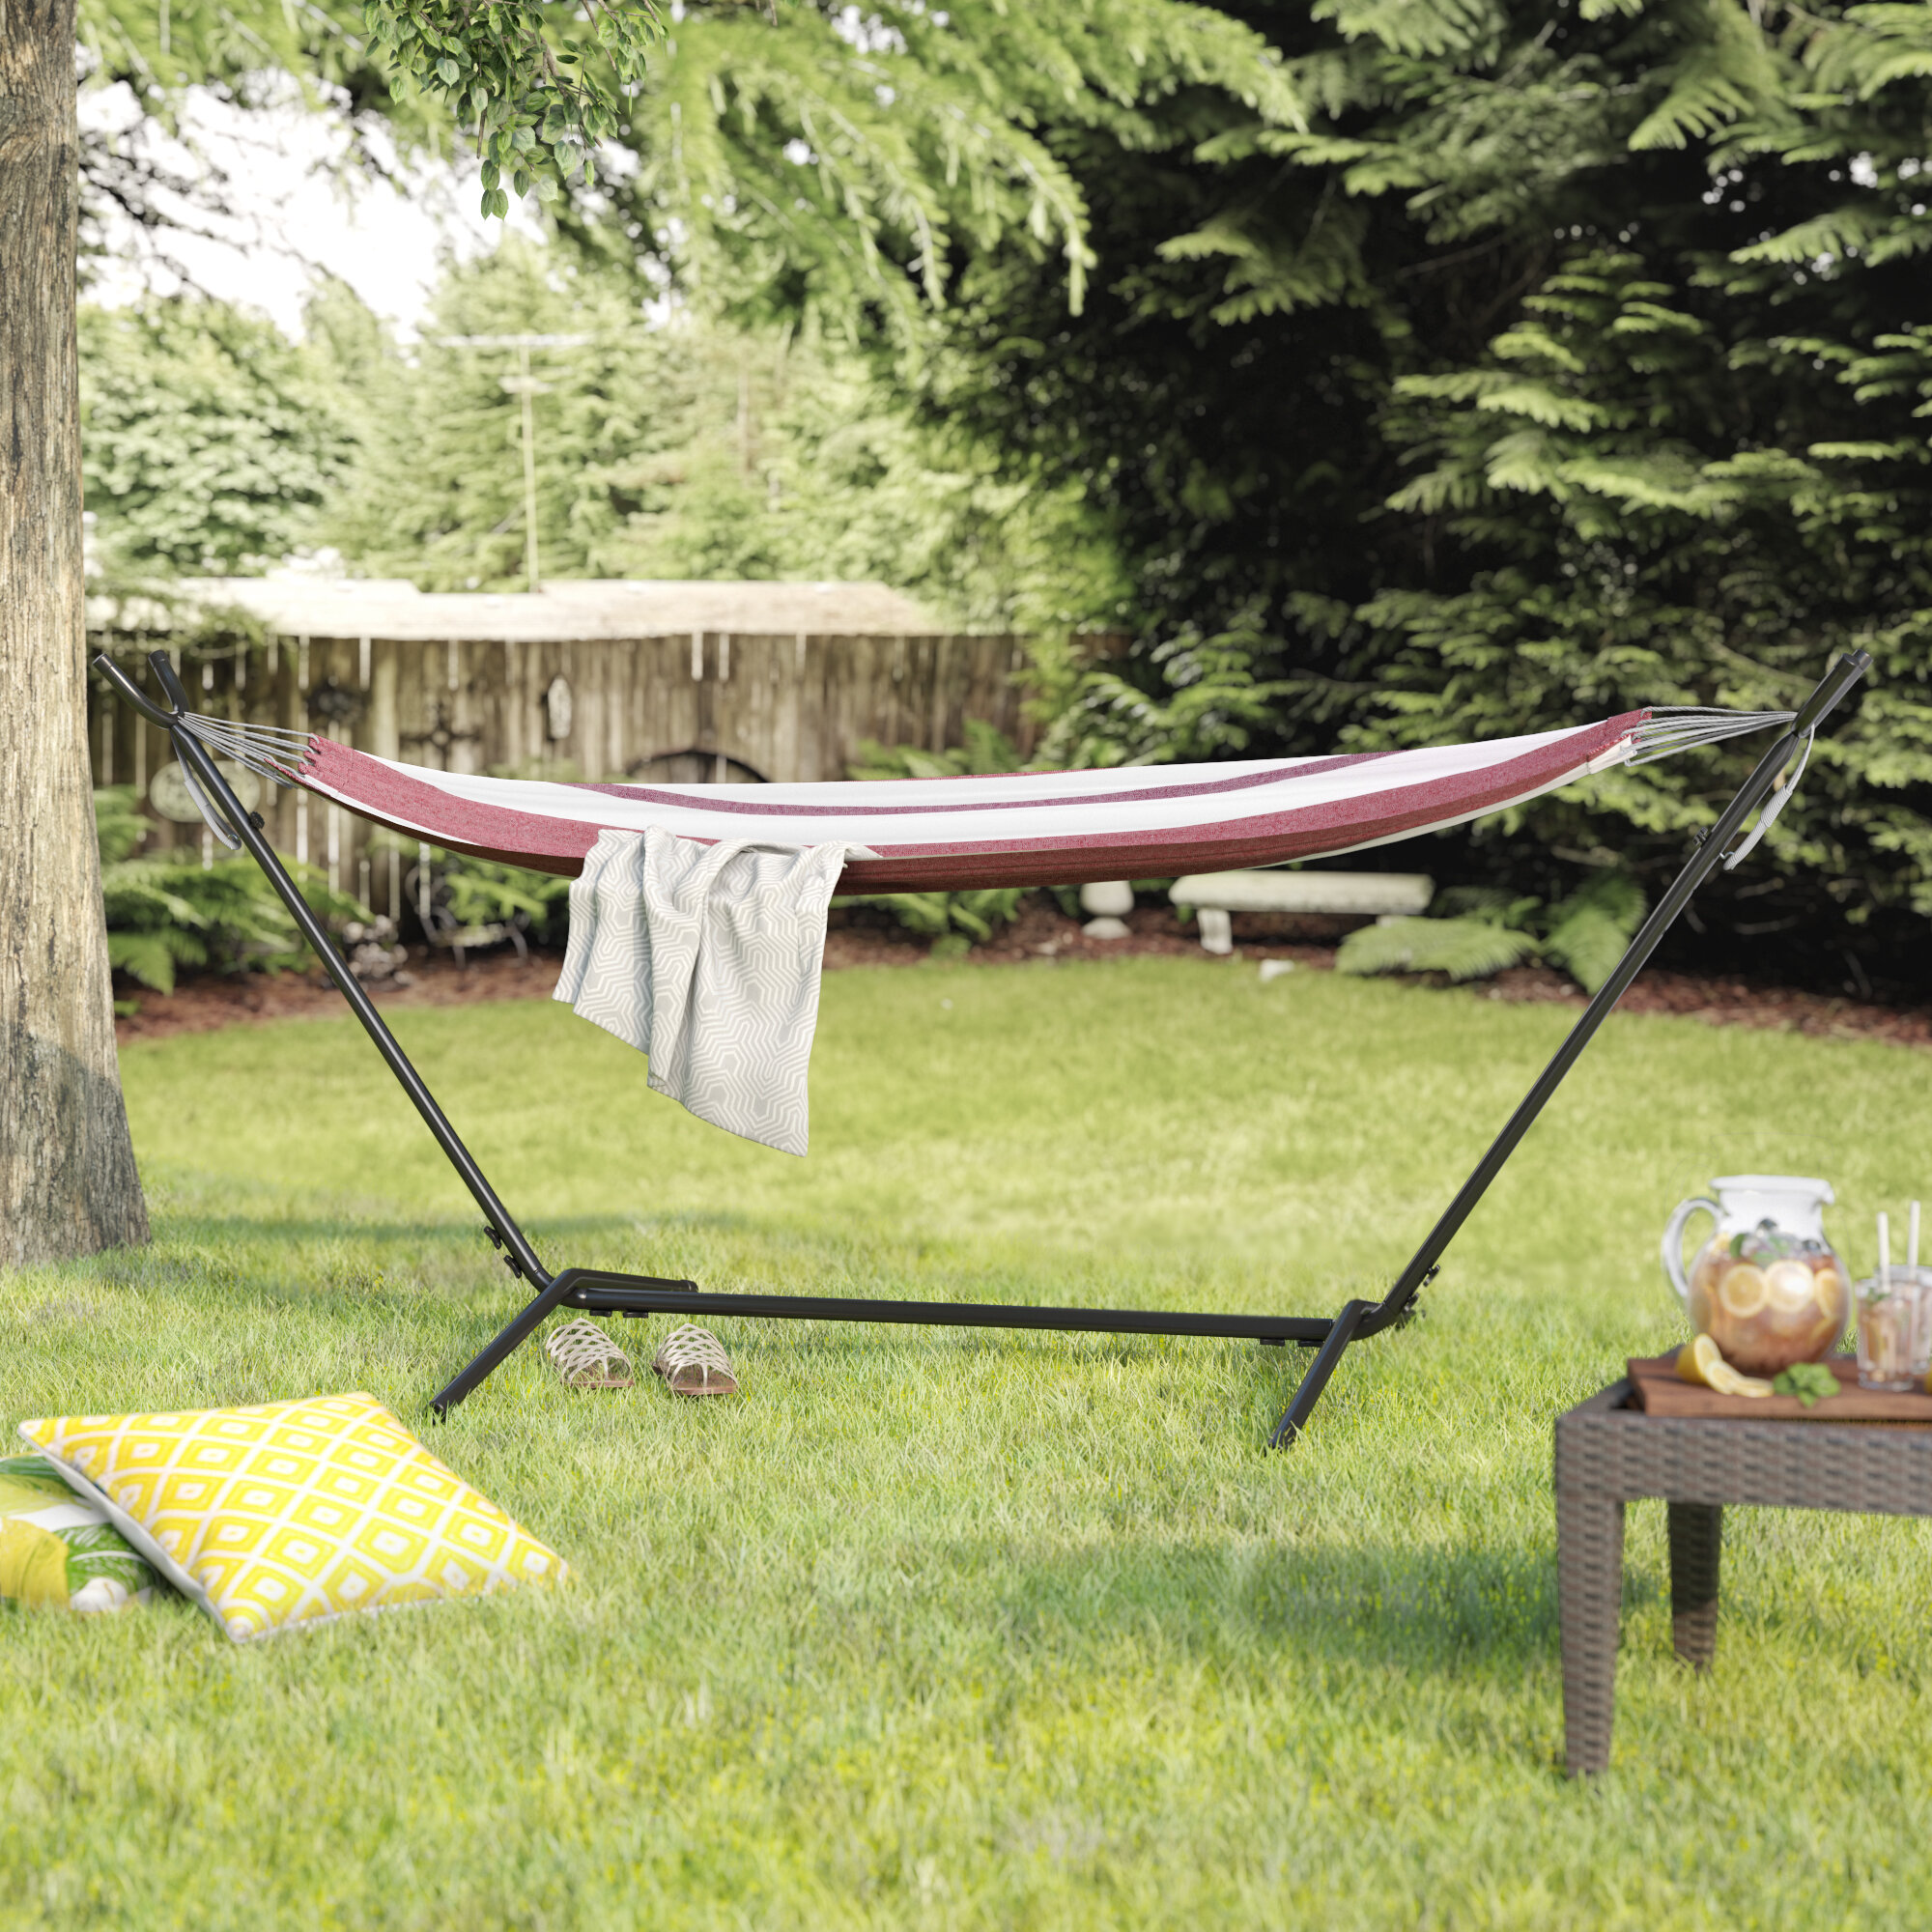 r e llc i n t stand hammocks s heavenly y resized products universal images behold bungee hush hammock